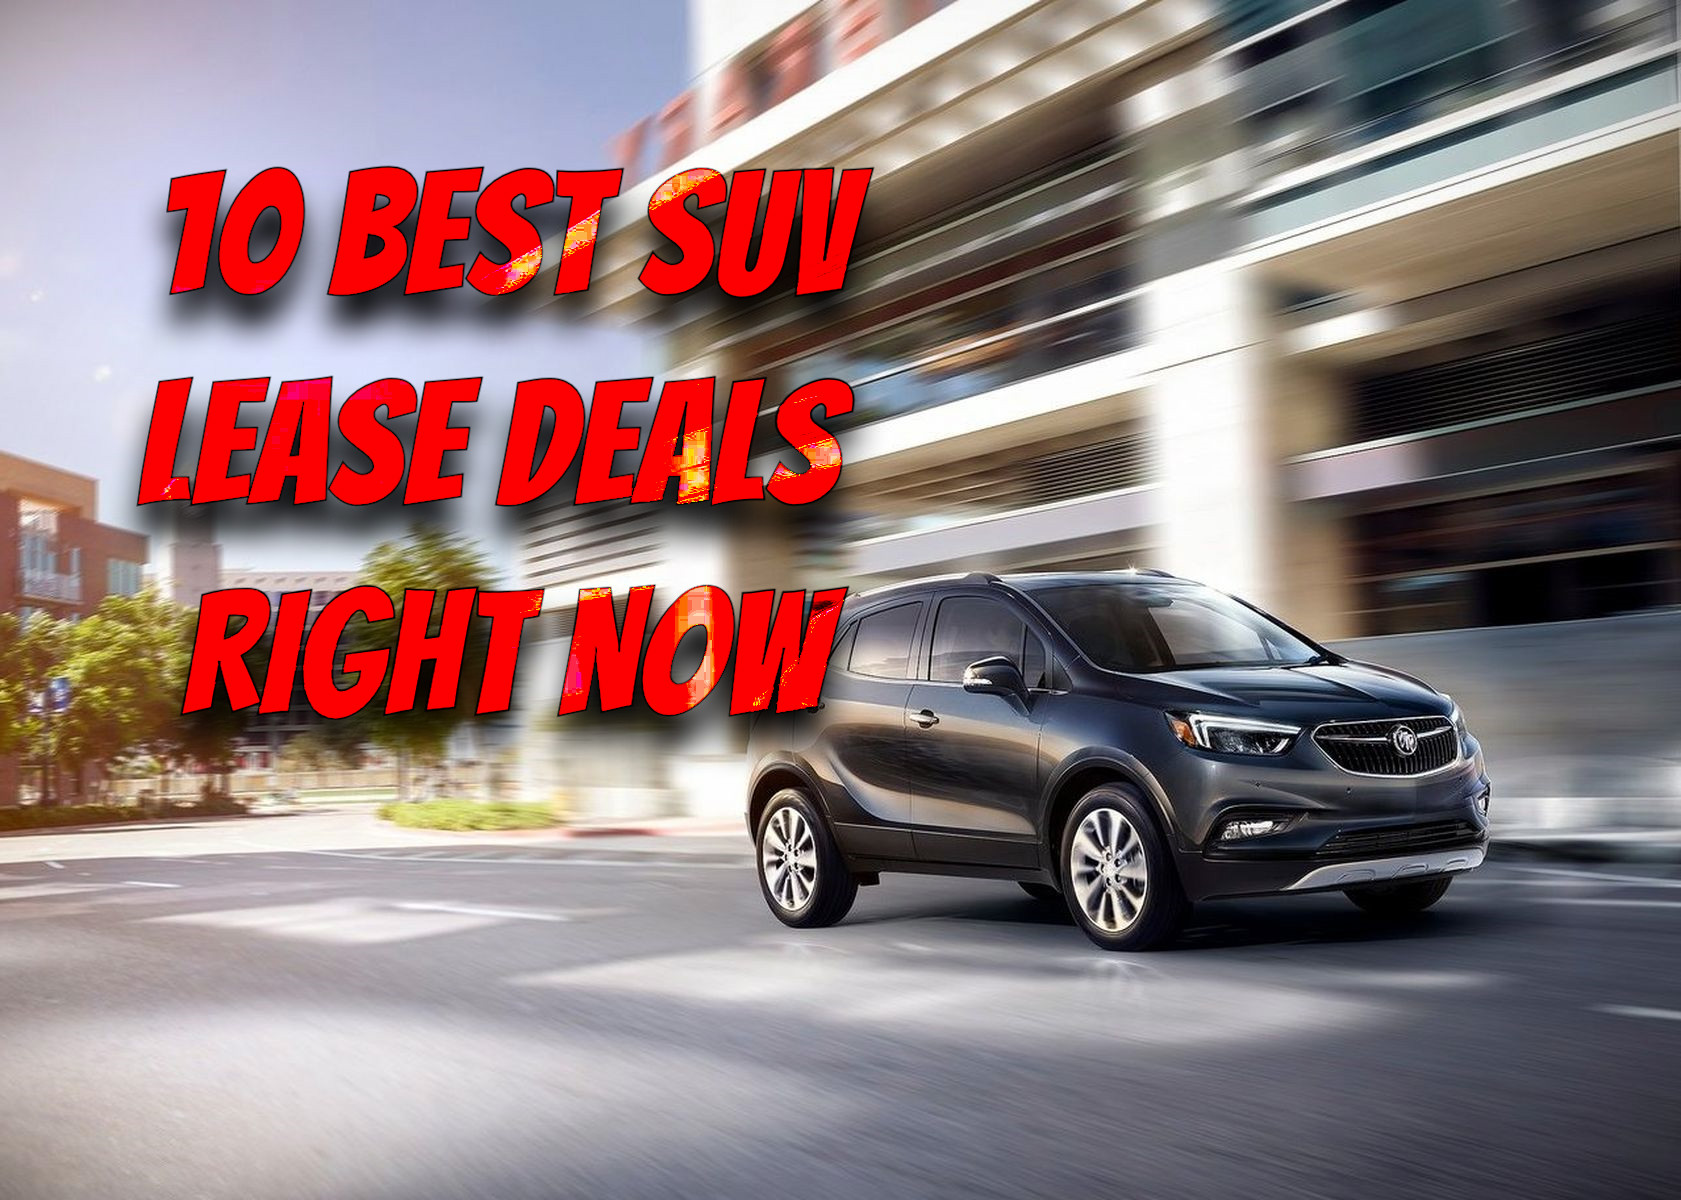 Best Car Deals Right Now Best Rated Car 2020 New Car Worth Waiting For